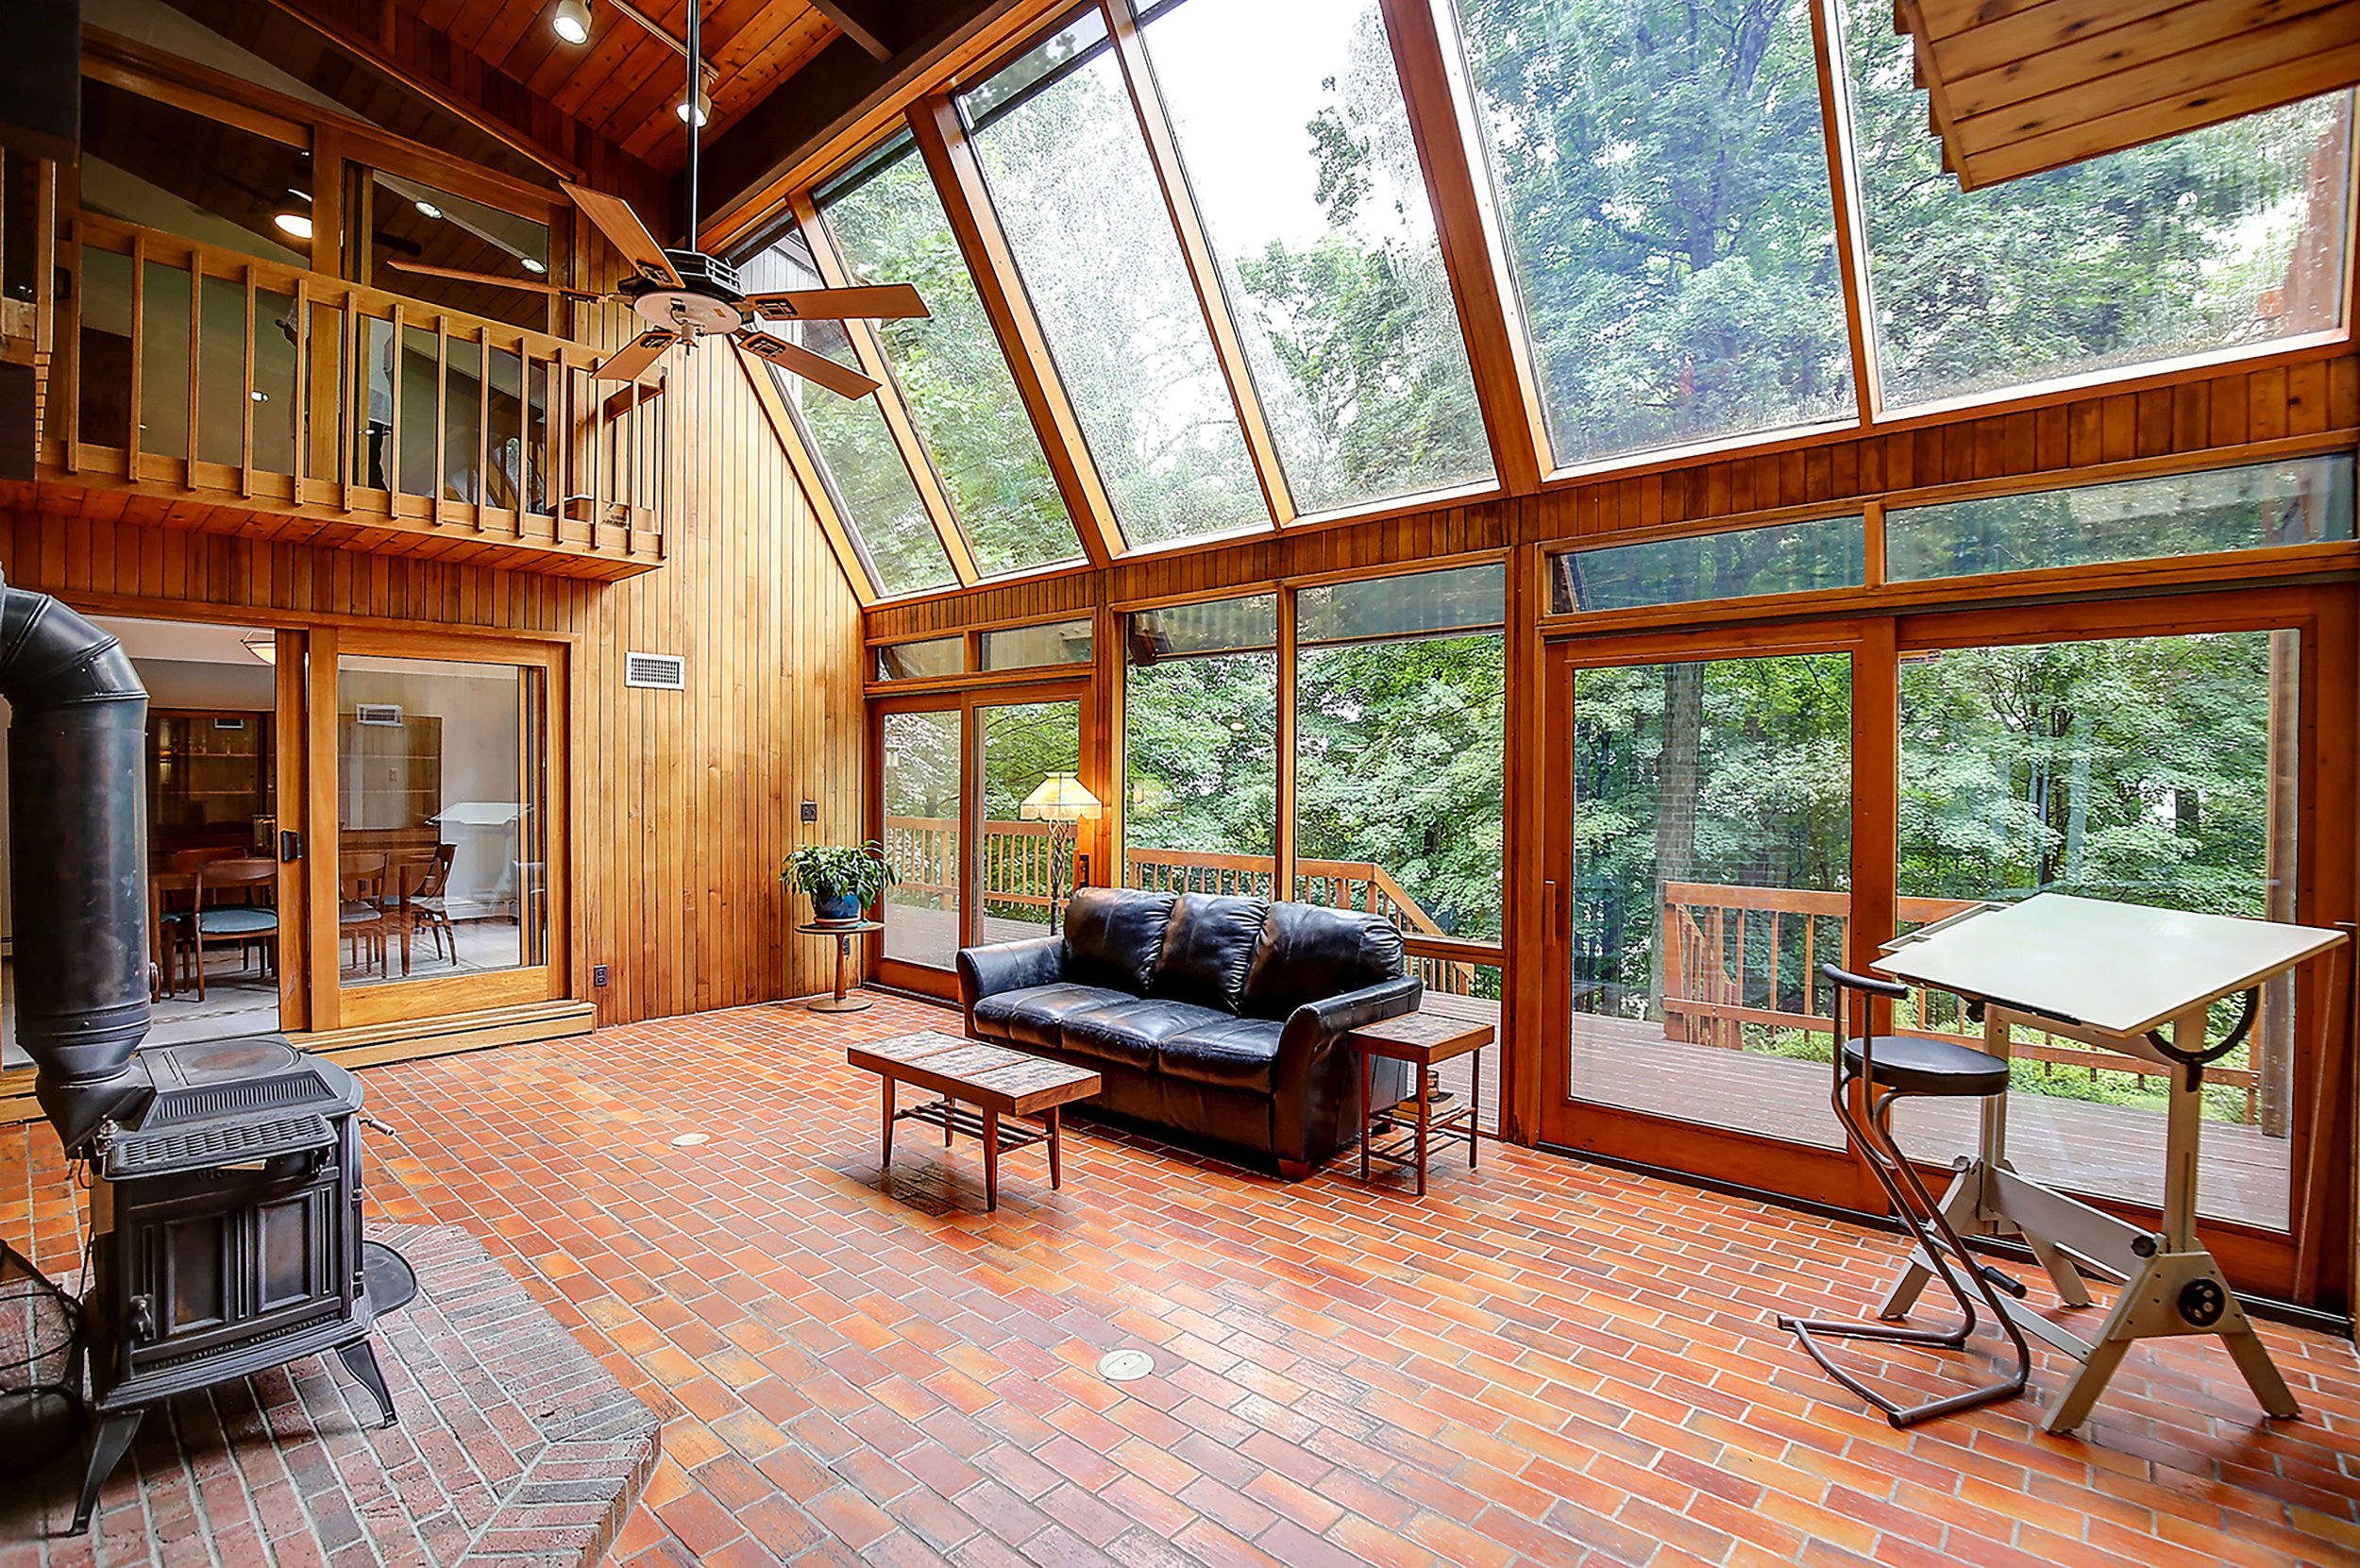 3 Live amongst the trees in the two story Great Room with wood stove and soaring windows IMG_6051_2_3.jpg